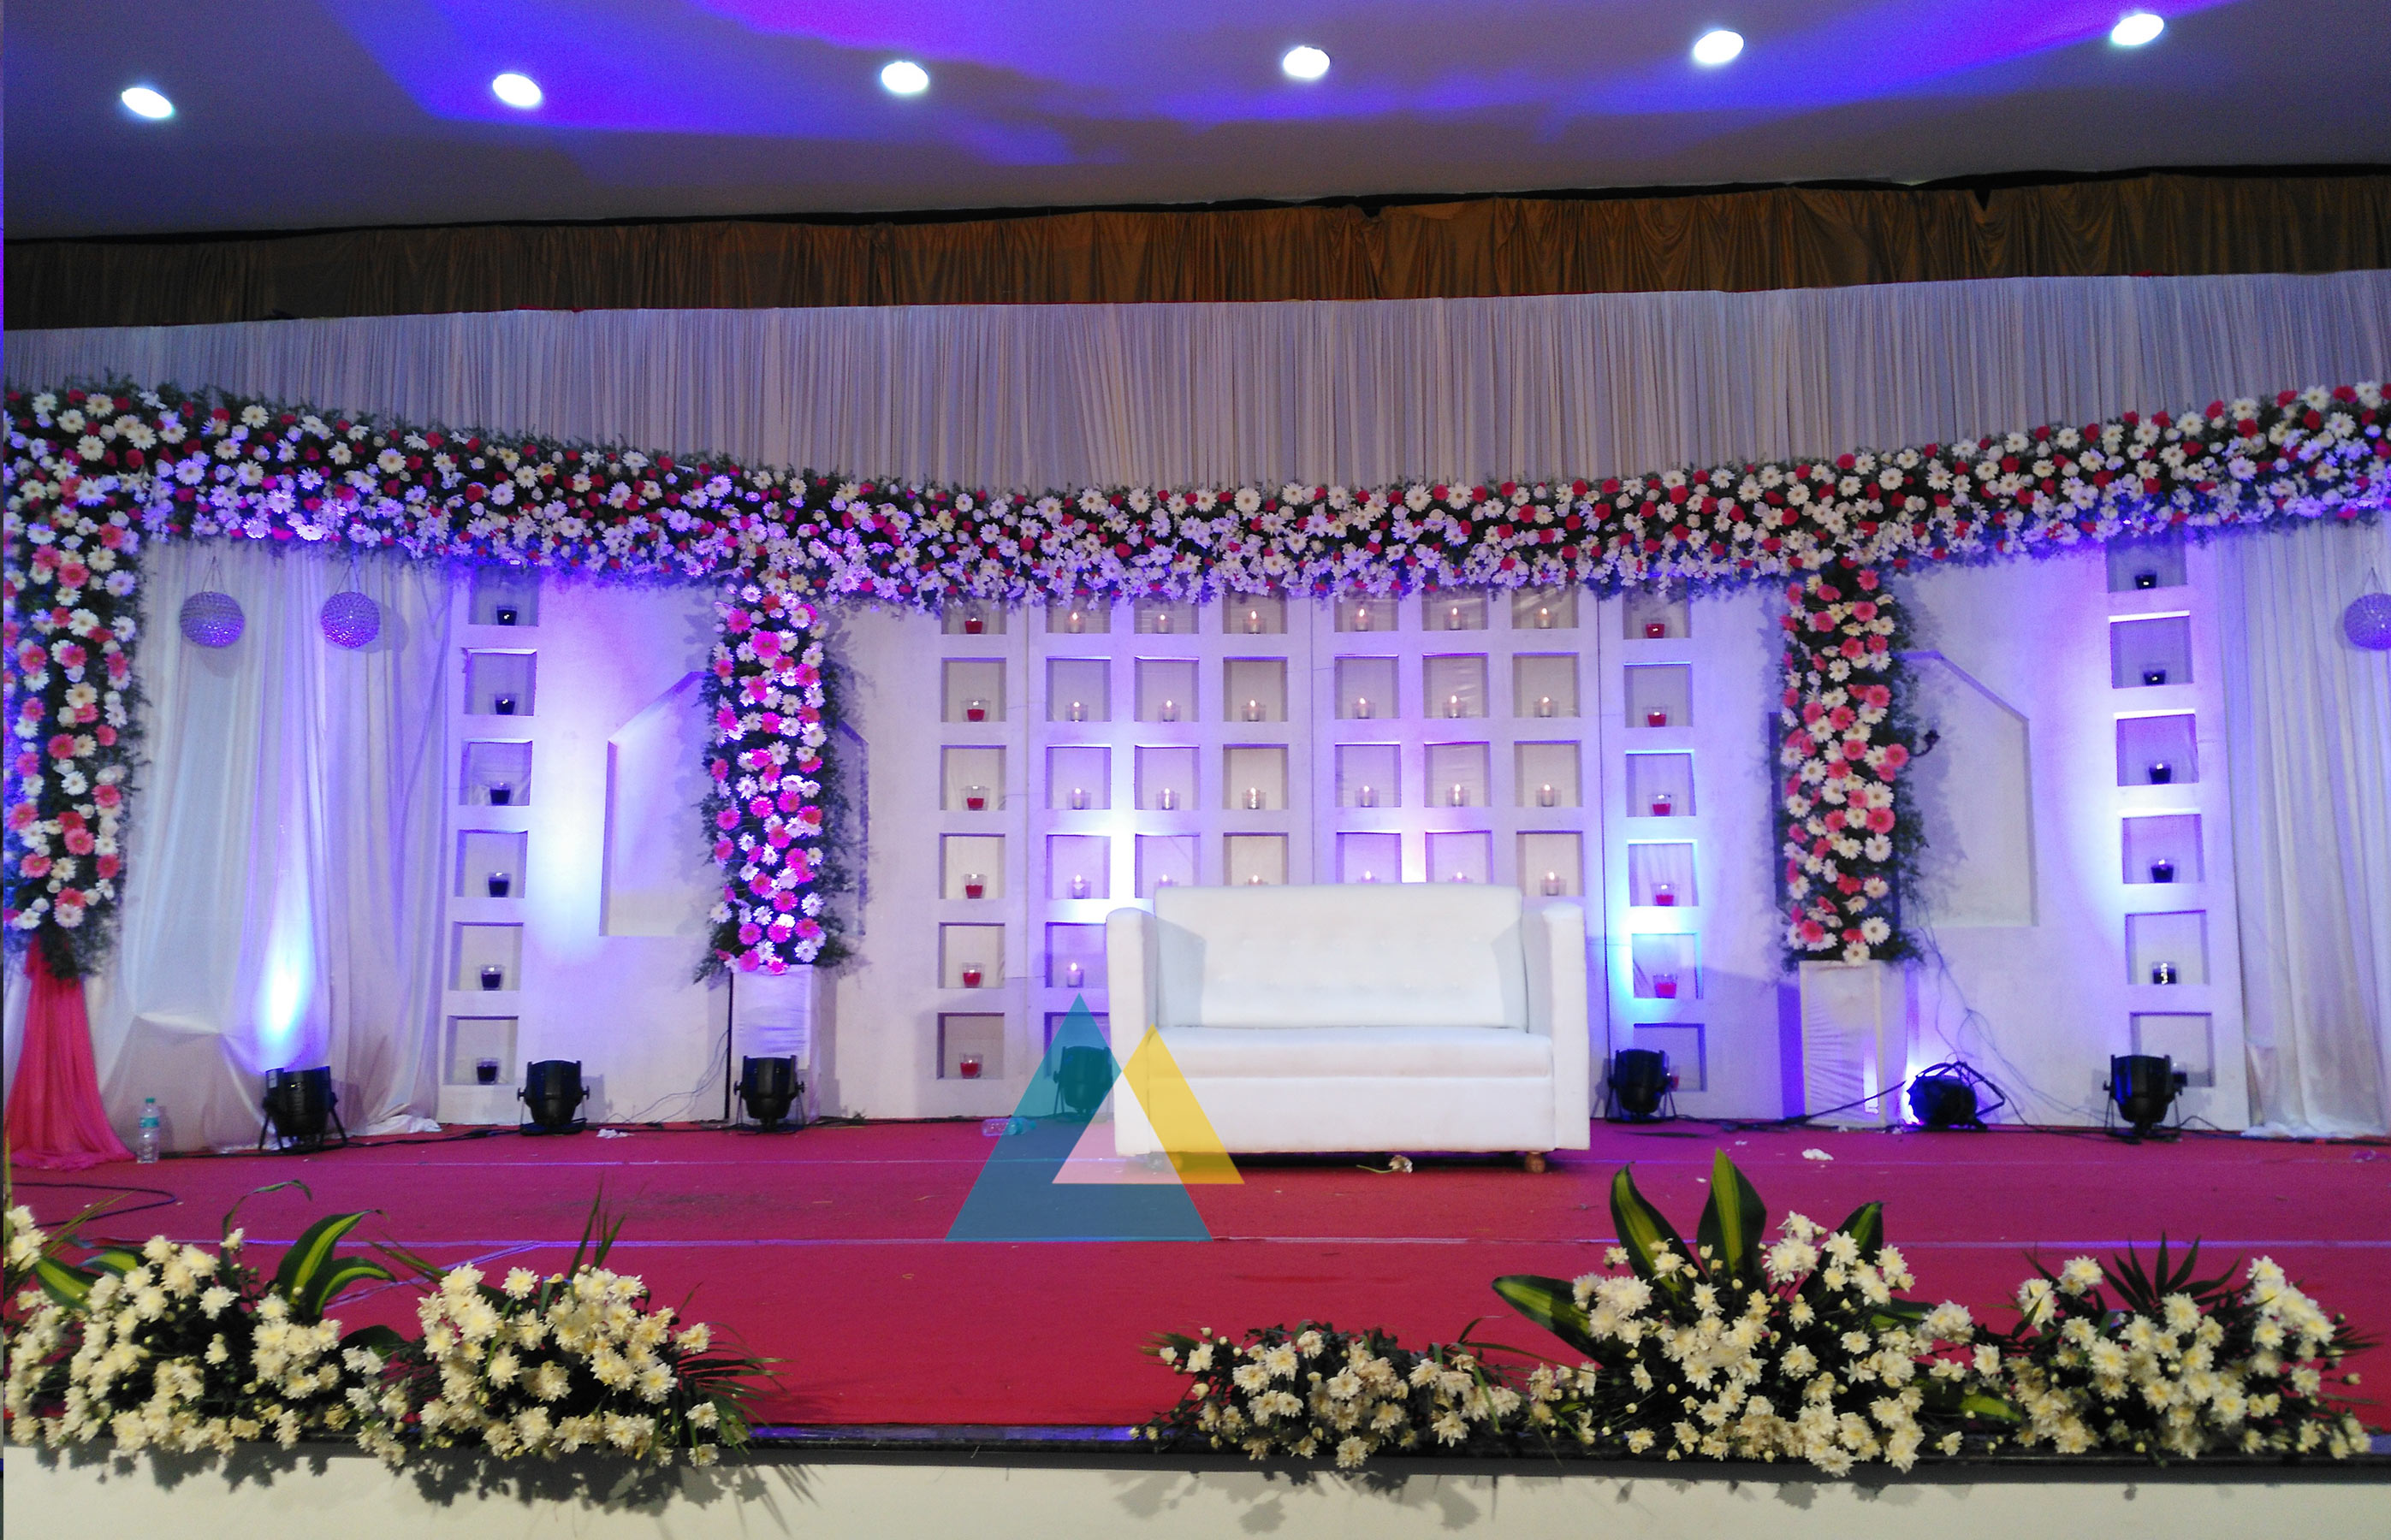 Wedding reception decoration done at bkn auditorium purasaiwakkam chennai wedding decorators Latest decoration ideas